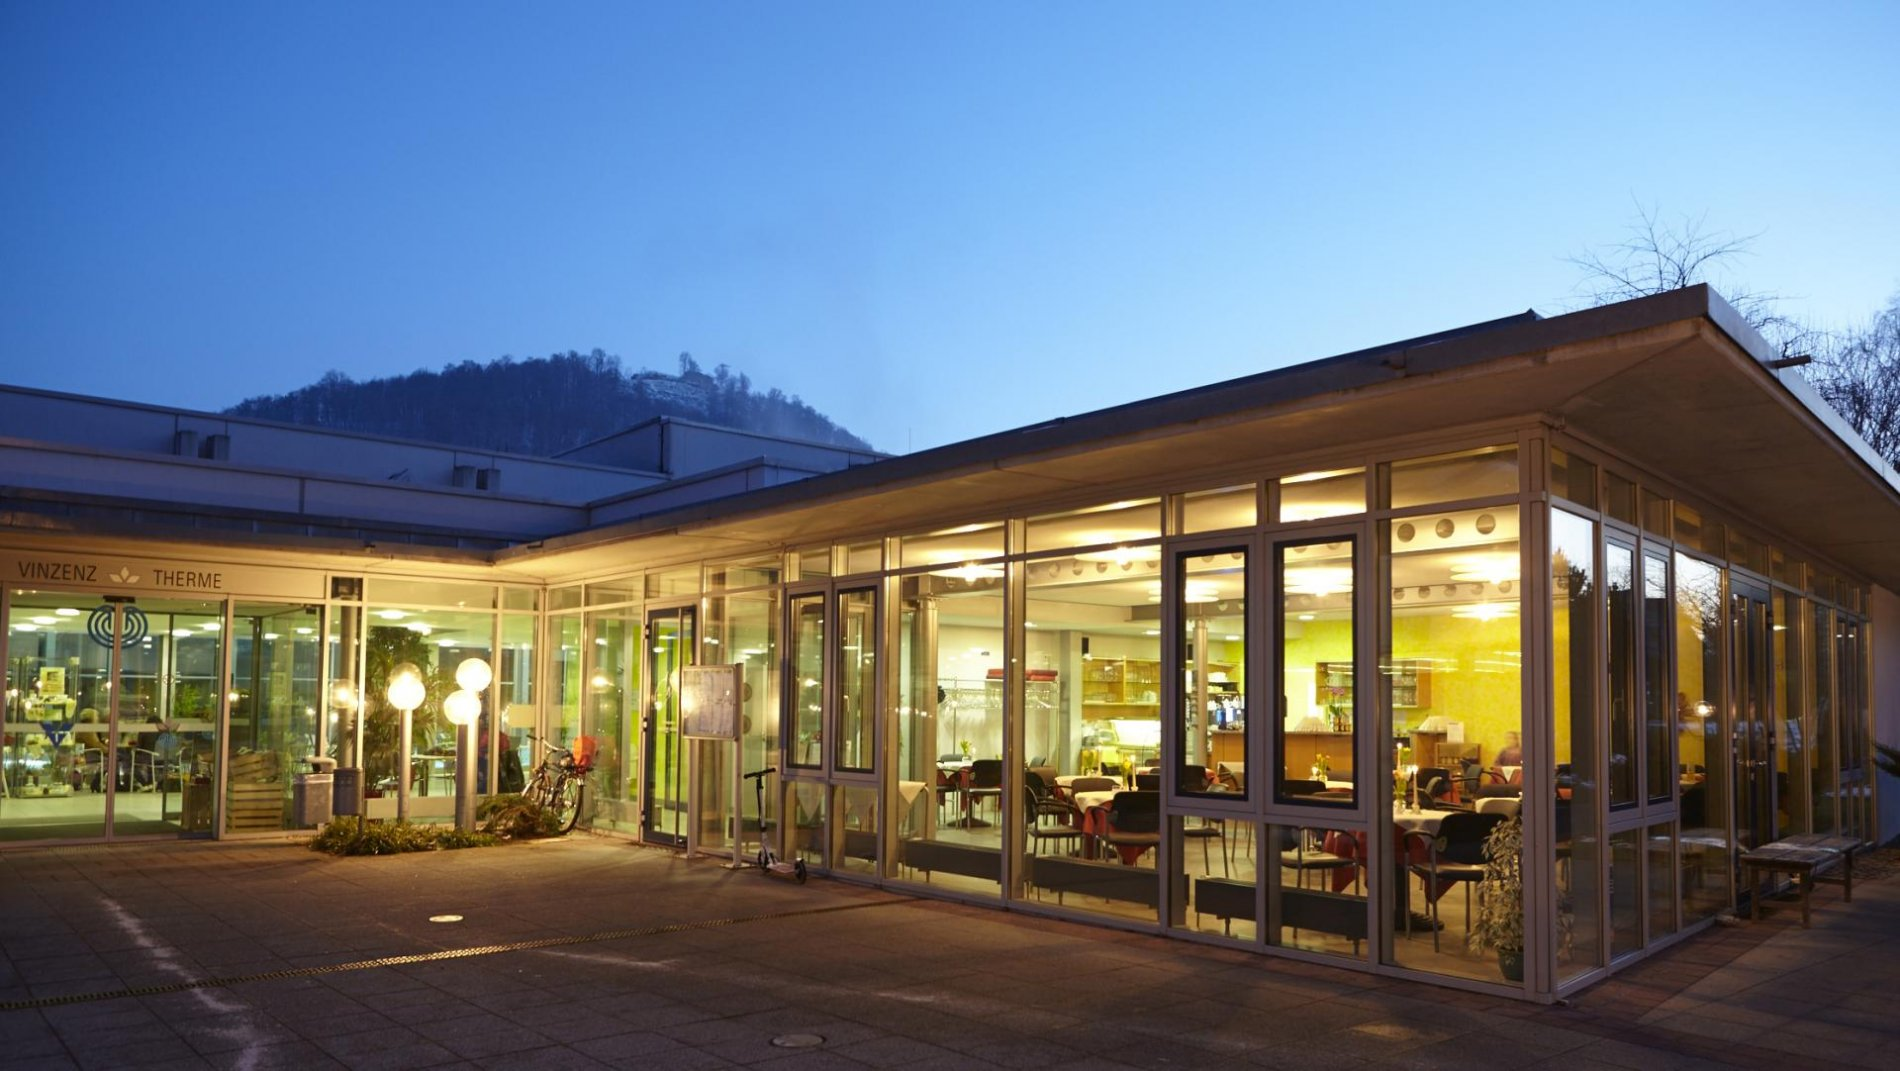 Thermalbad Cafe in der Vinzenz Therme Bad Ditzenbach